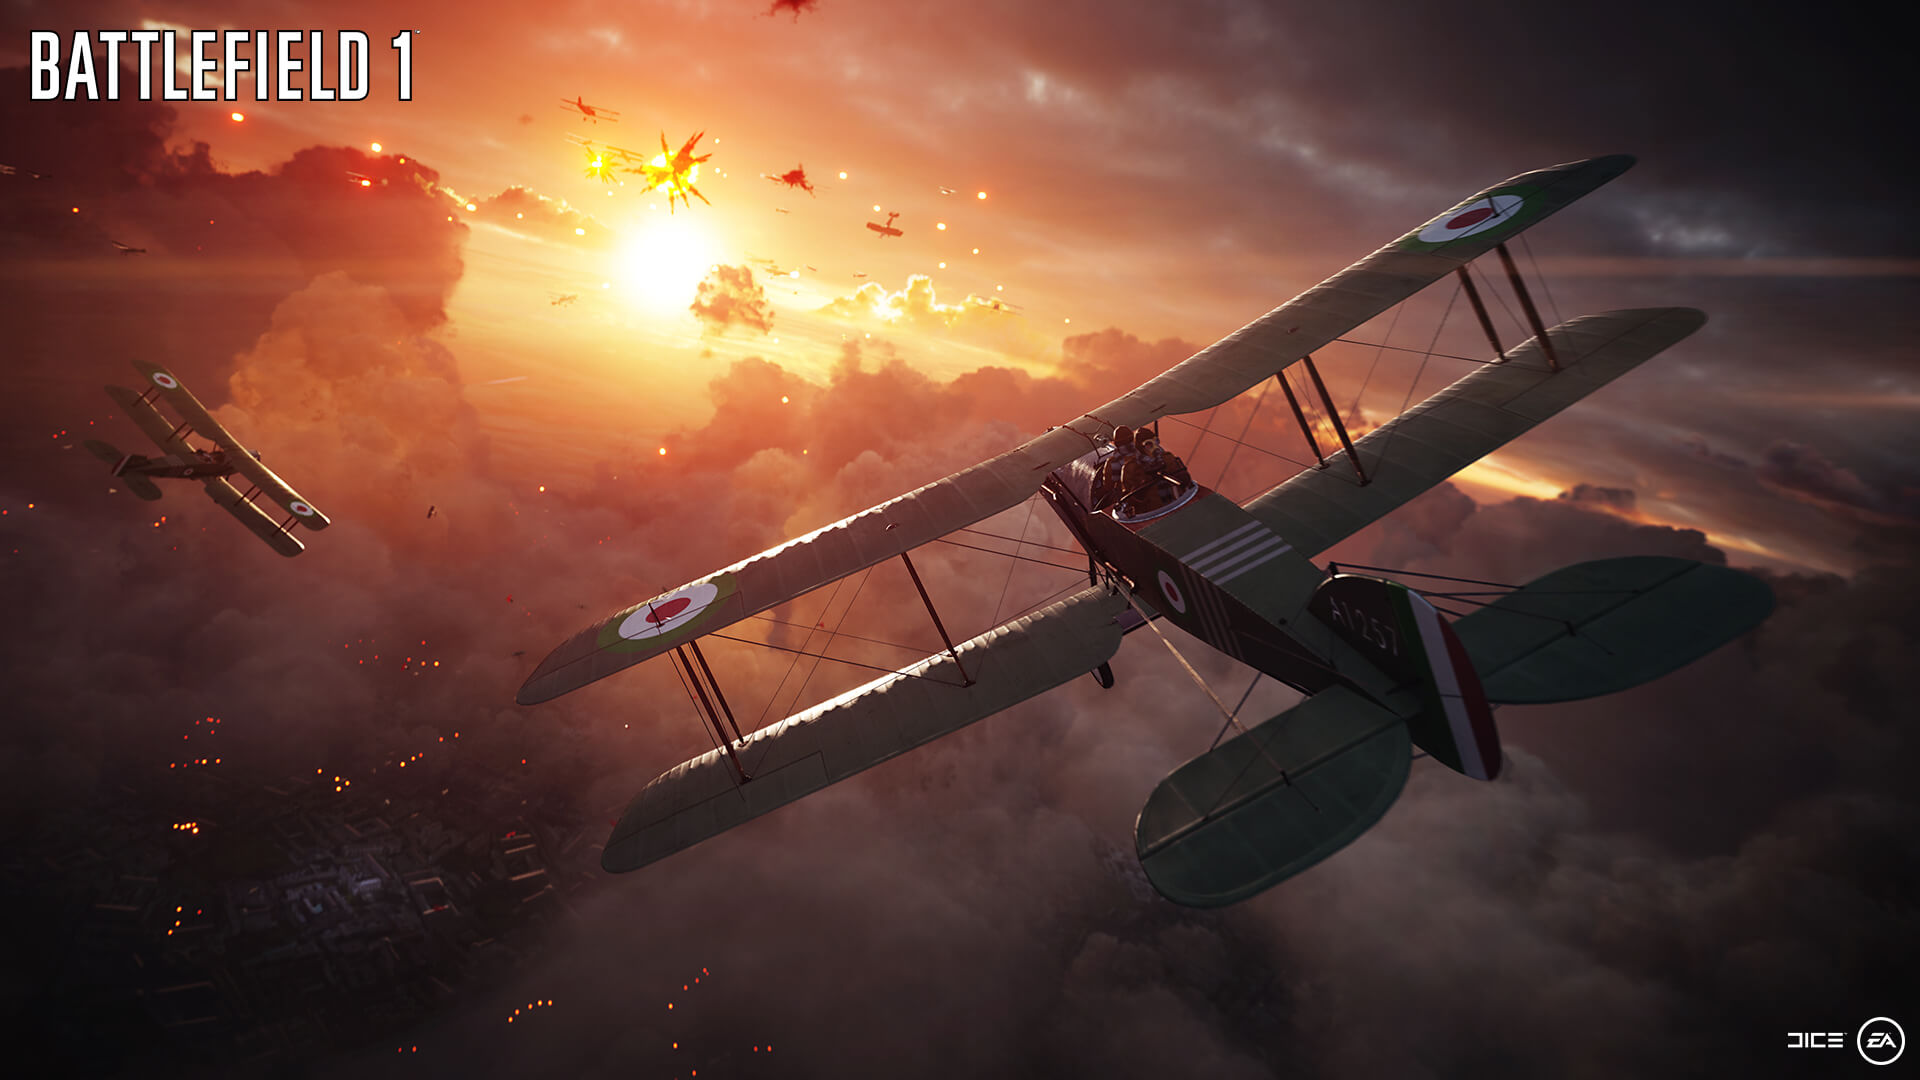 All Battlefield 1 Launch Maps and Modes Announced